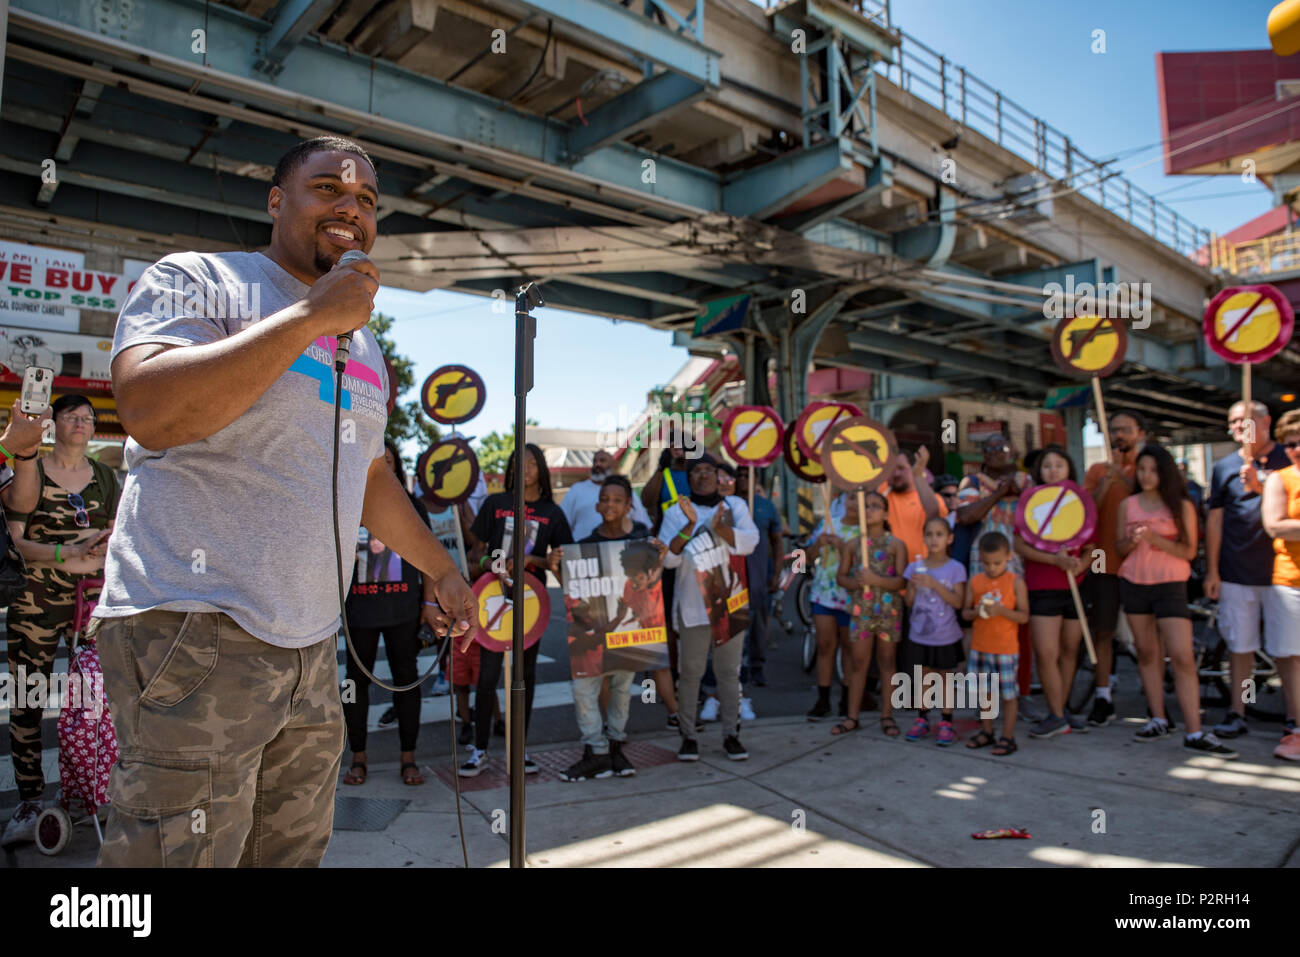 Philadelphia, USA. 16th Jun, 2018. State Representative Jason Dawkins gives an impassioned speach about gun violence and invites young people to challenge him to find them jobs to prevent more violence in the community. June 16 2018. Credit: Chris Baker Evens. Credit: Christopher Evens/Alamy Live News - Stock Image